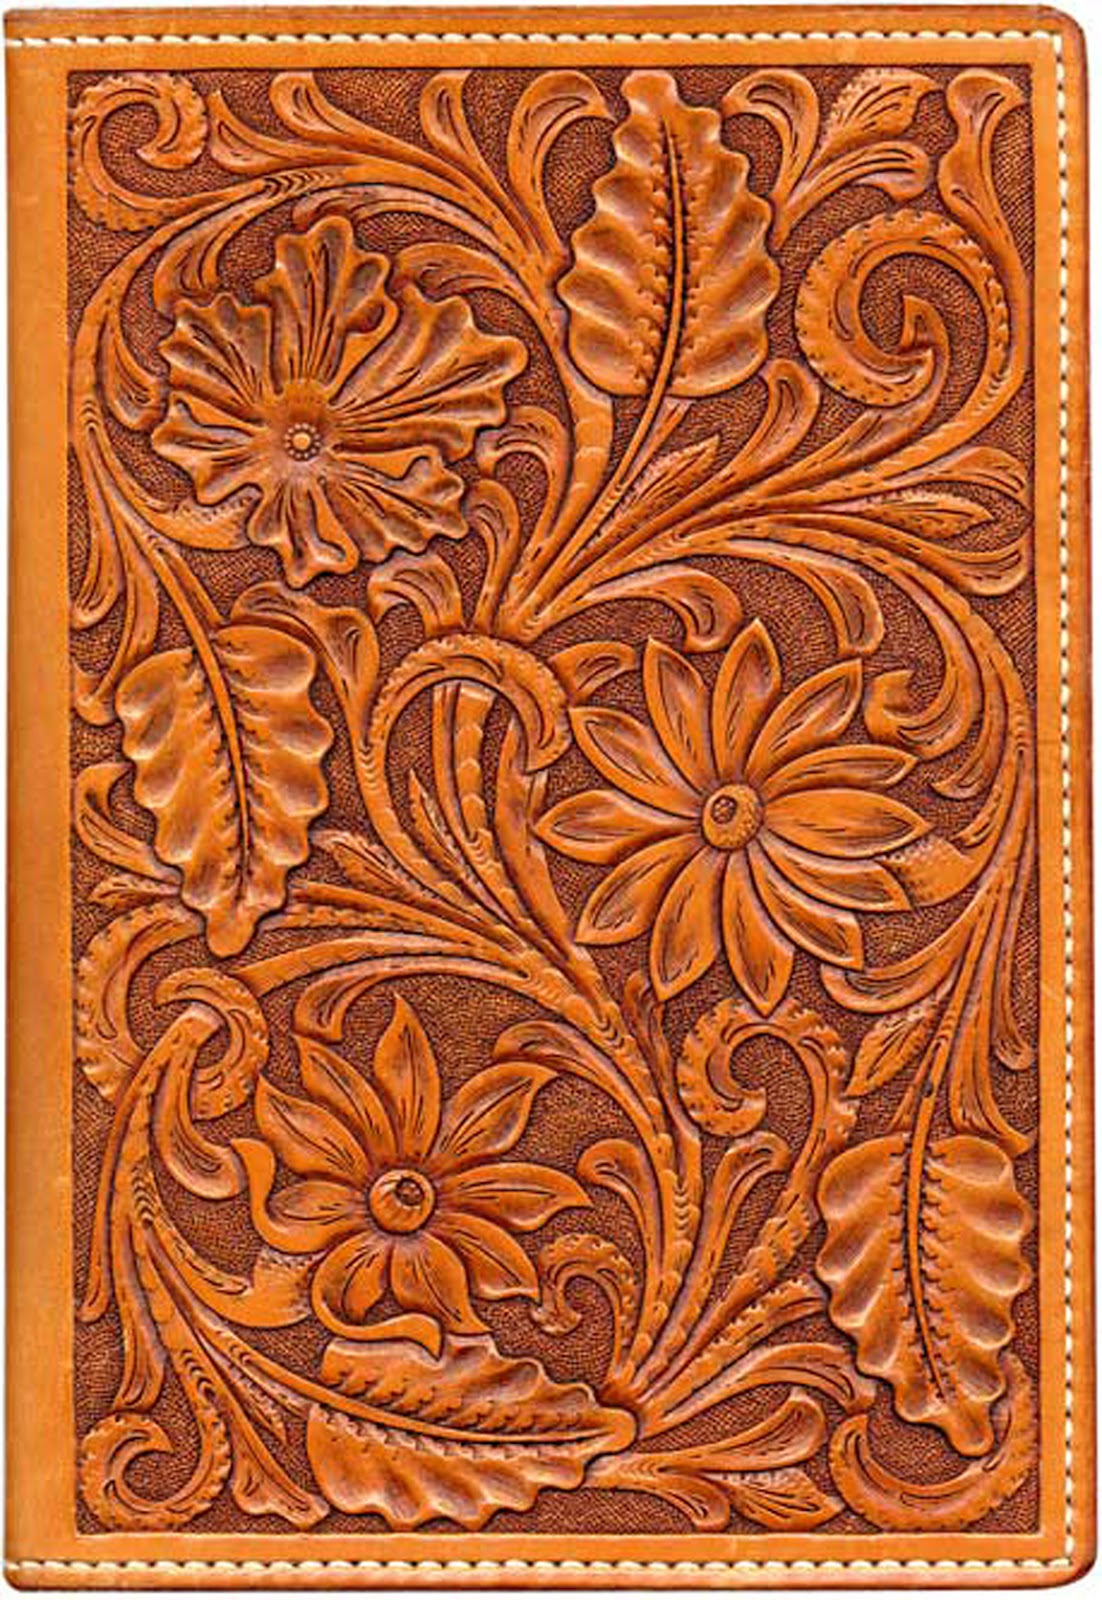 Free Relief Carving Patterns For Beginners